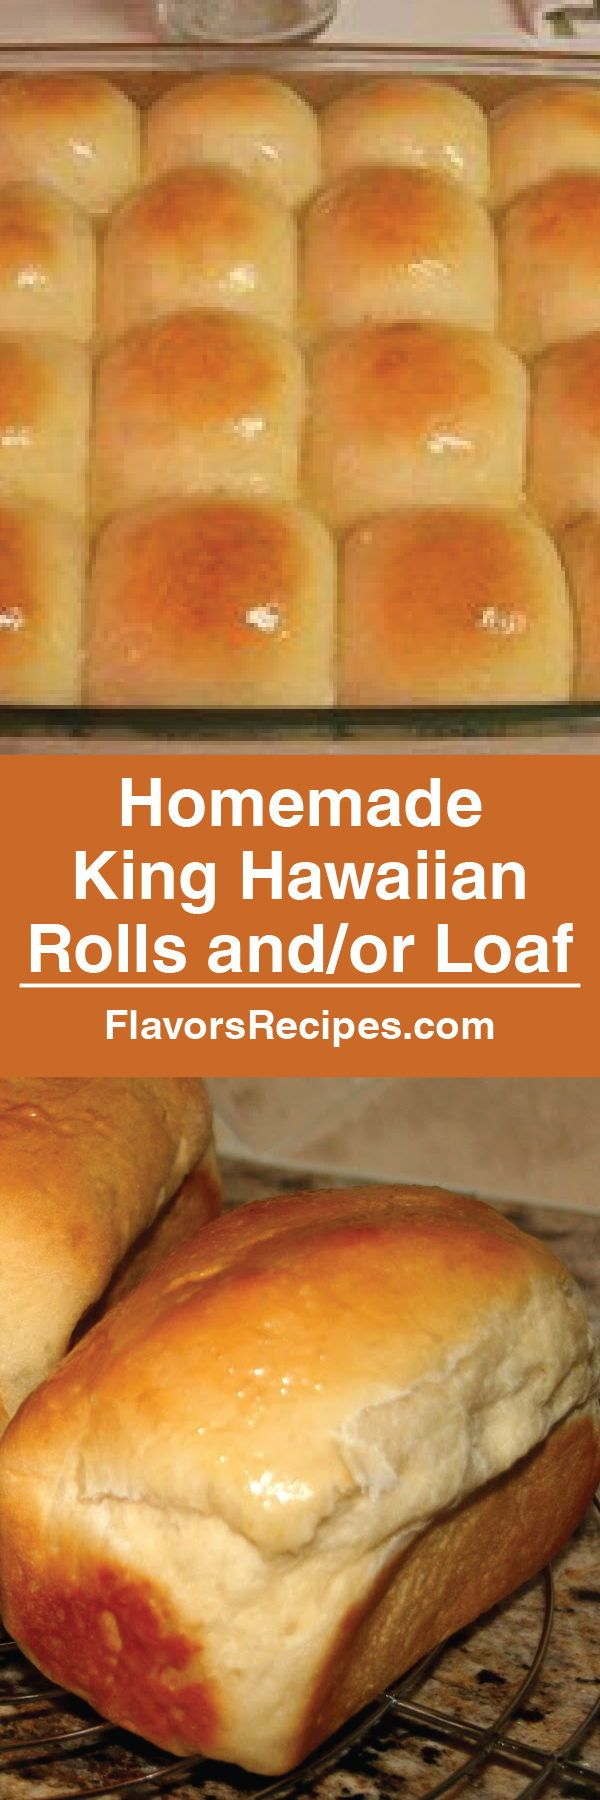 Delicious! Homemade King Hawaiian Rolls and/or Loaf